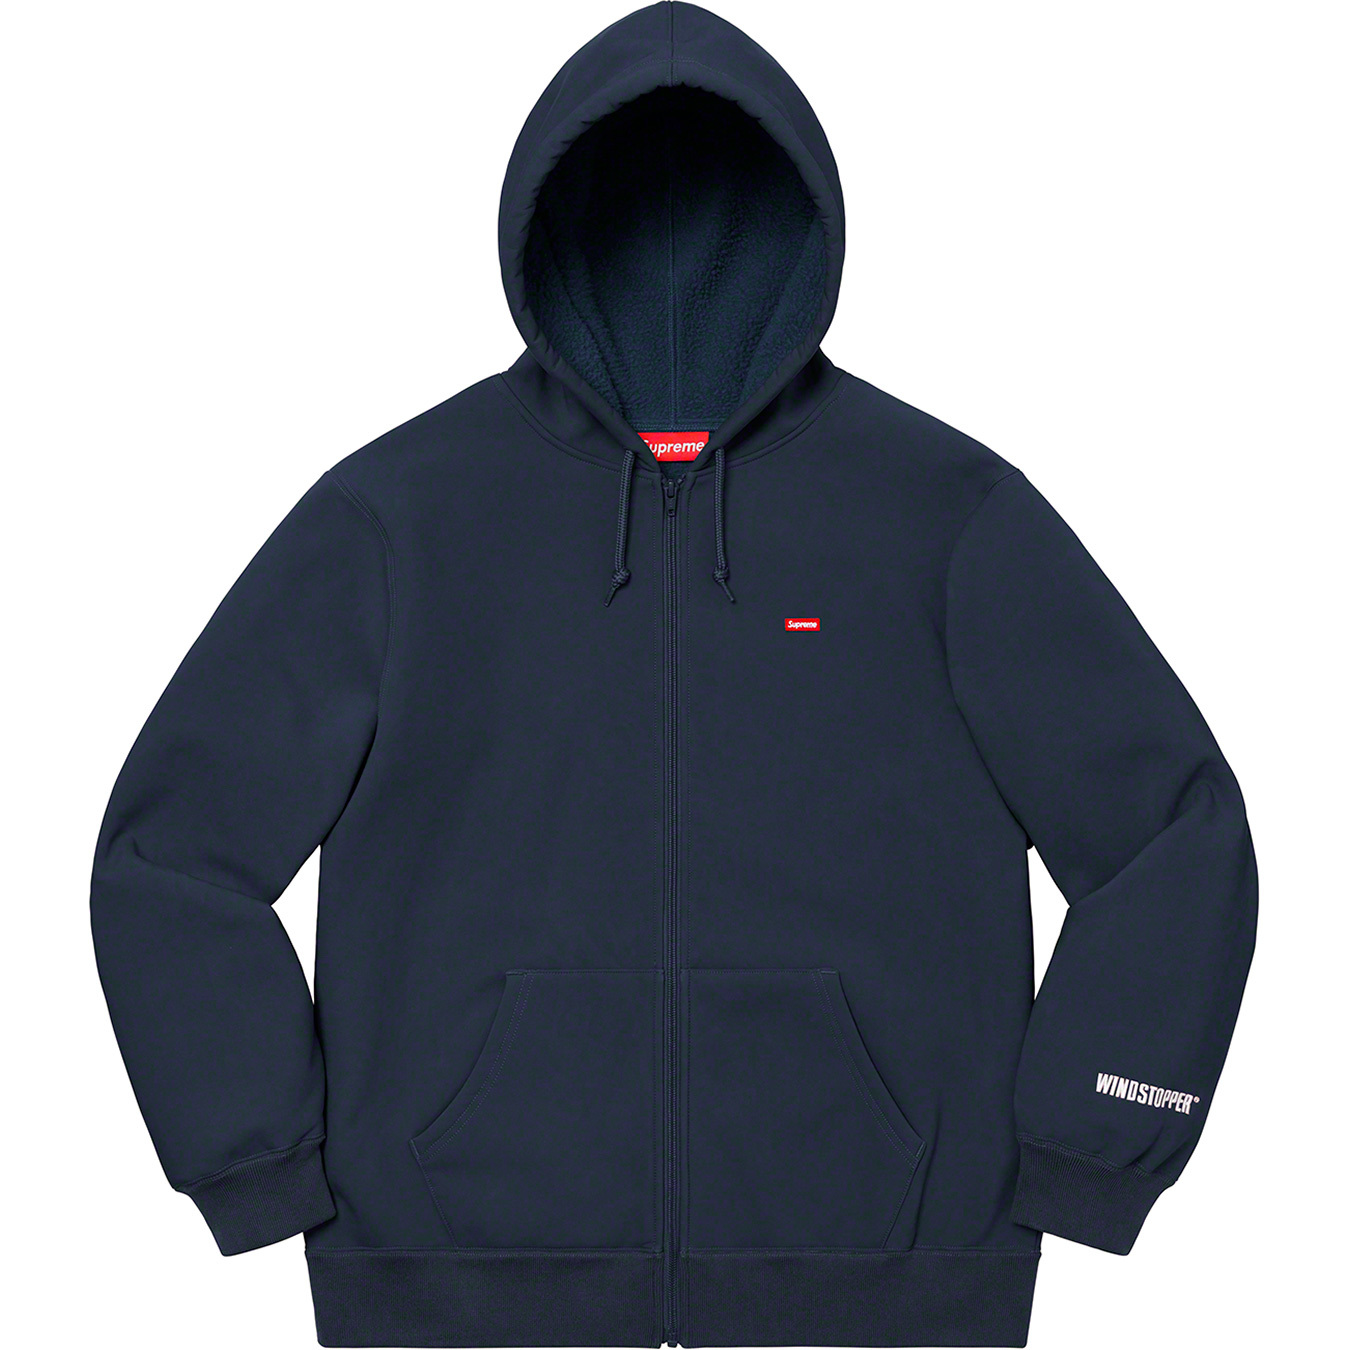 supreme-19aw-19fw-fall-winter-windstopper-zip-up-hooded-sweatshirt